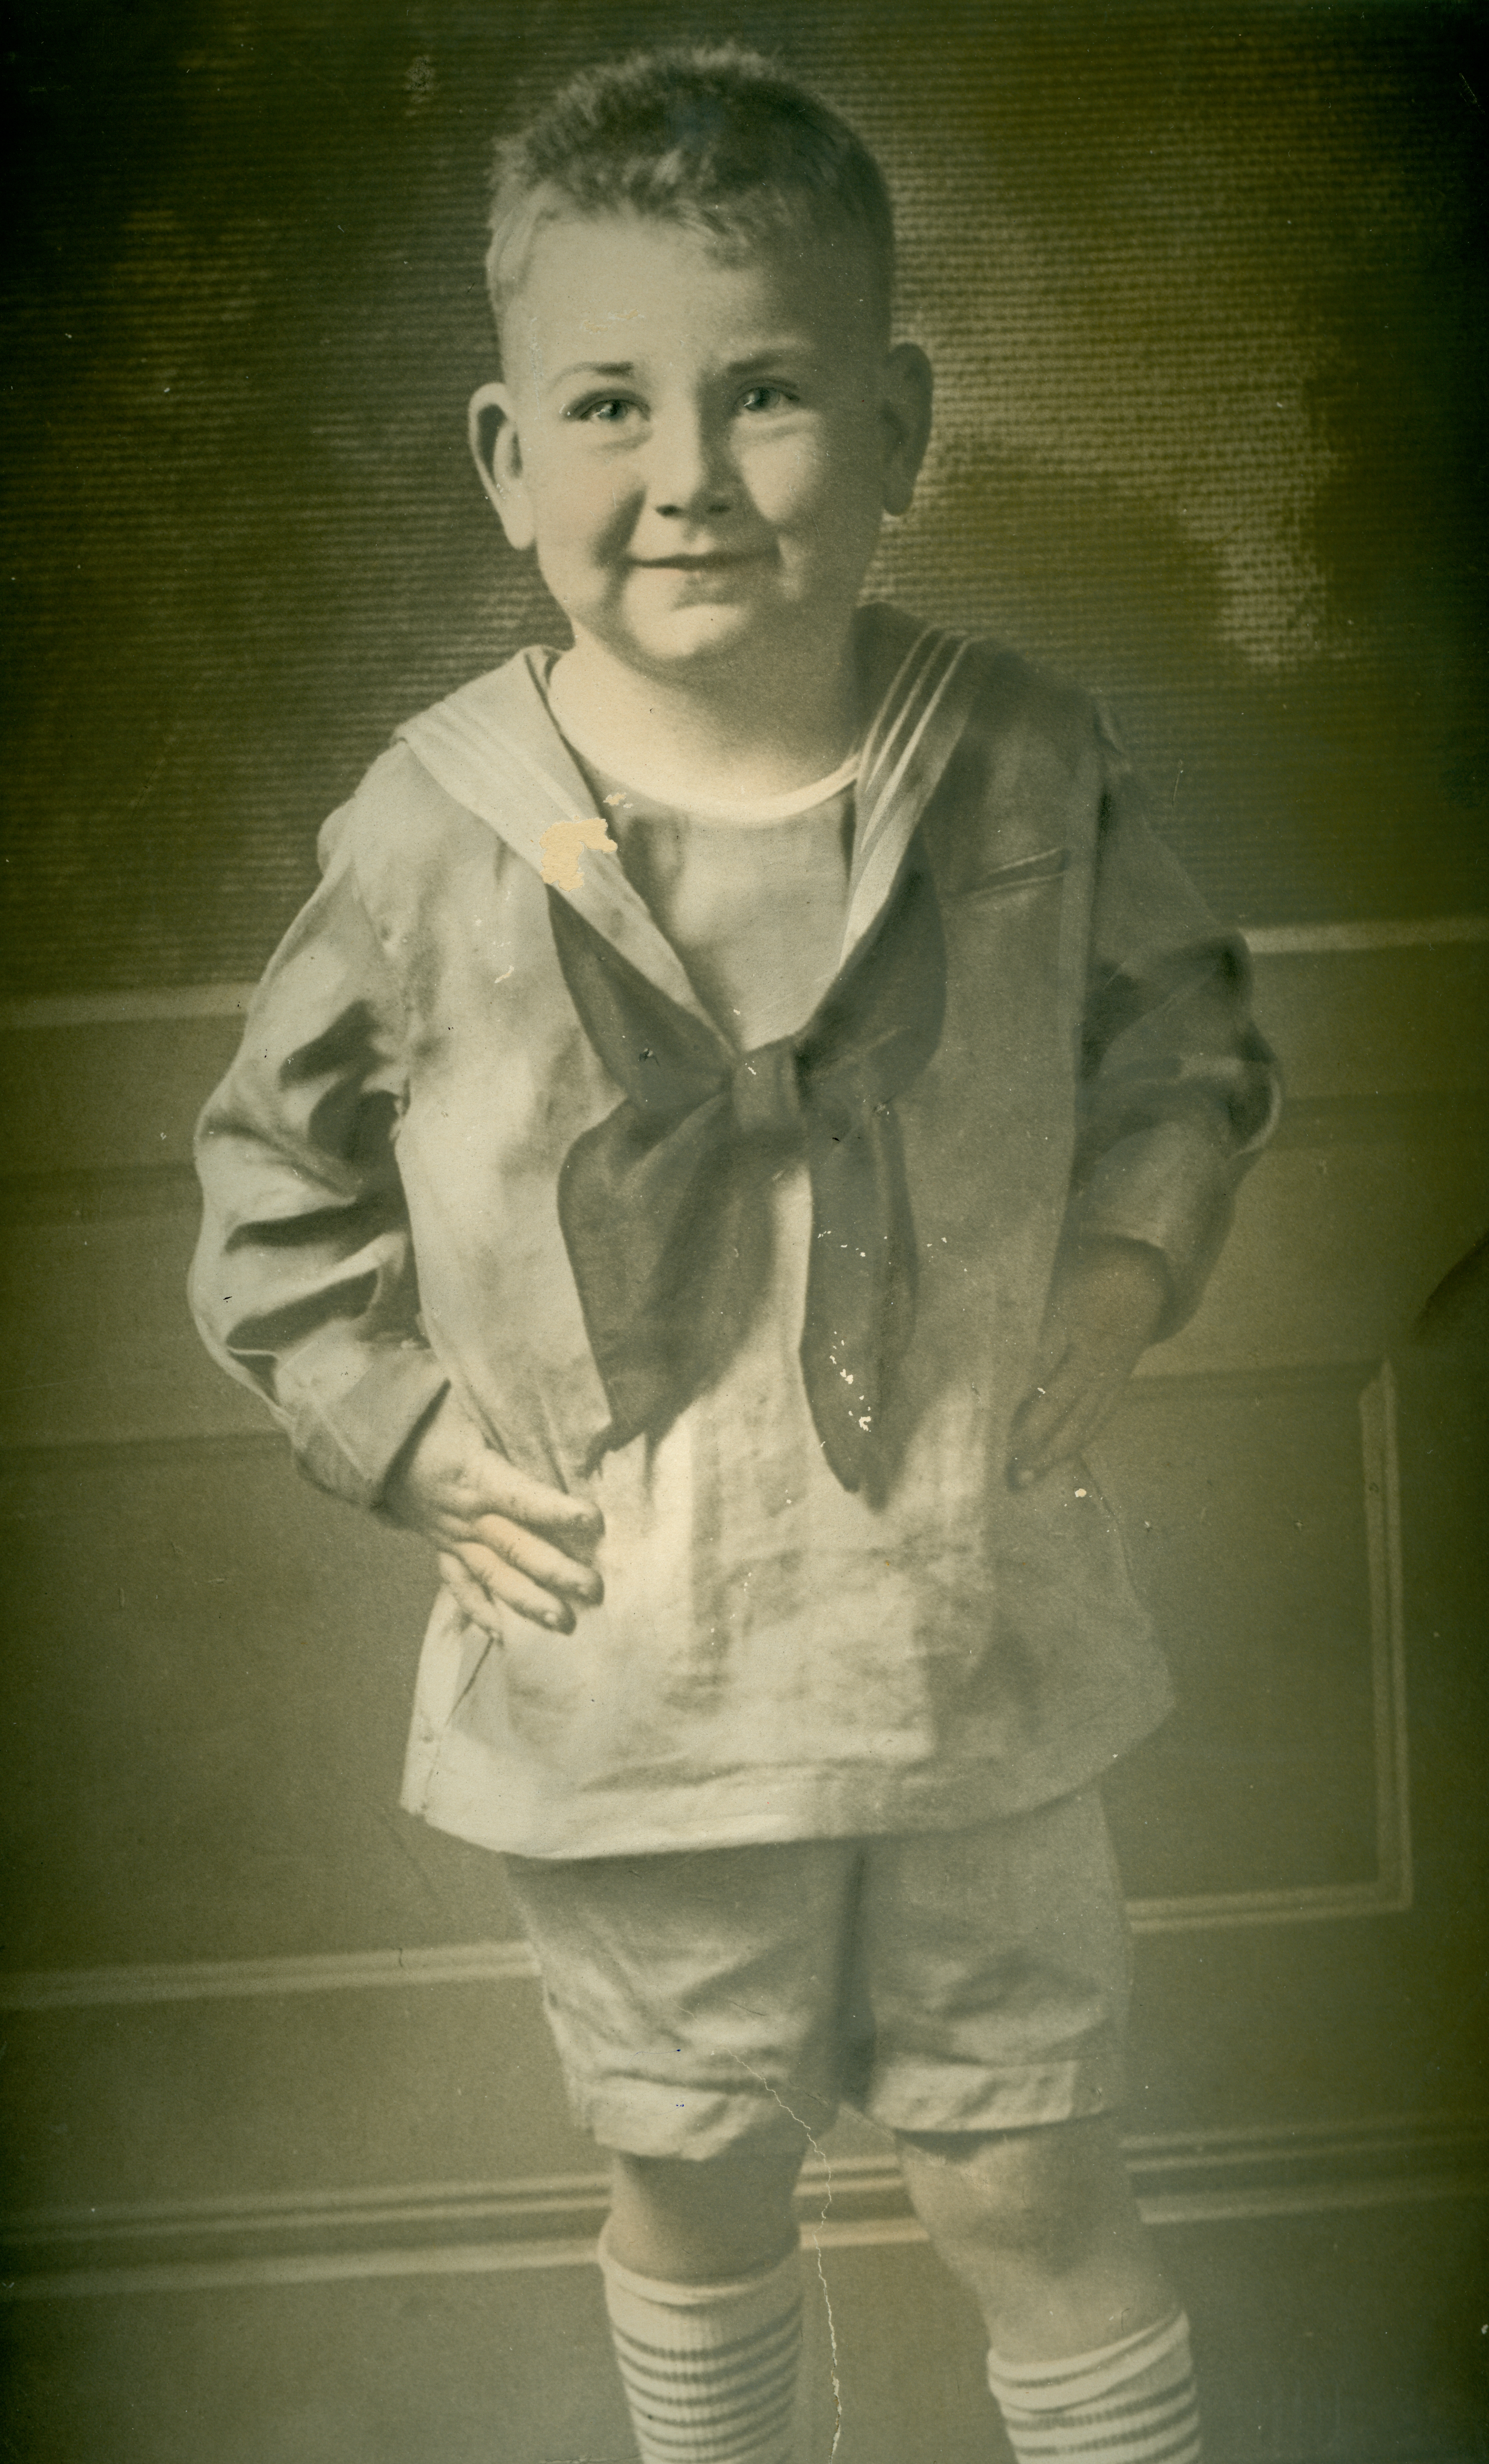 Does anyone recognize this adorable little boy?  His portrait was discovered inside a frame purchase